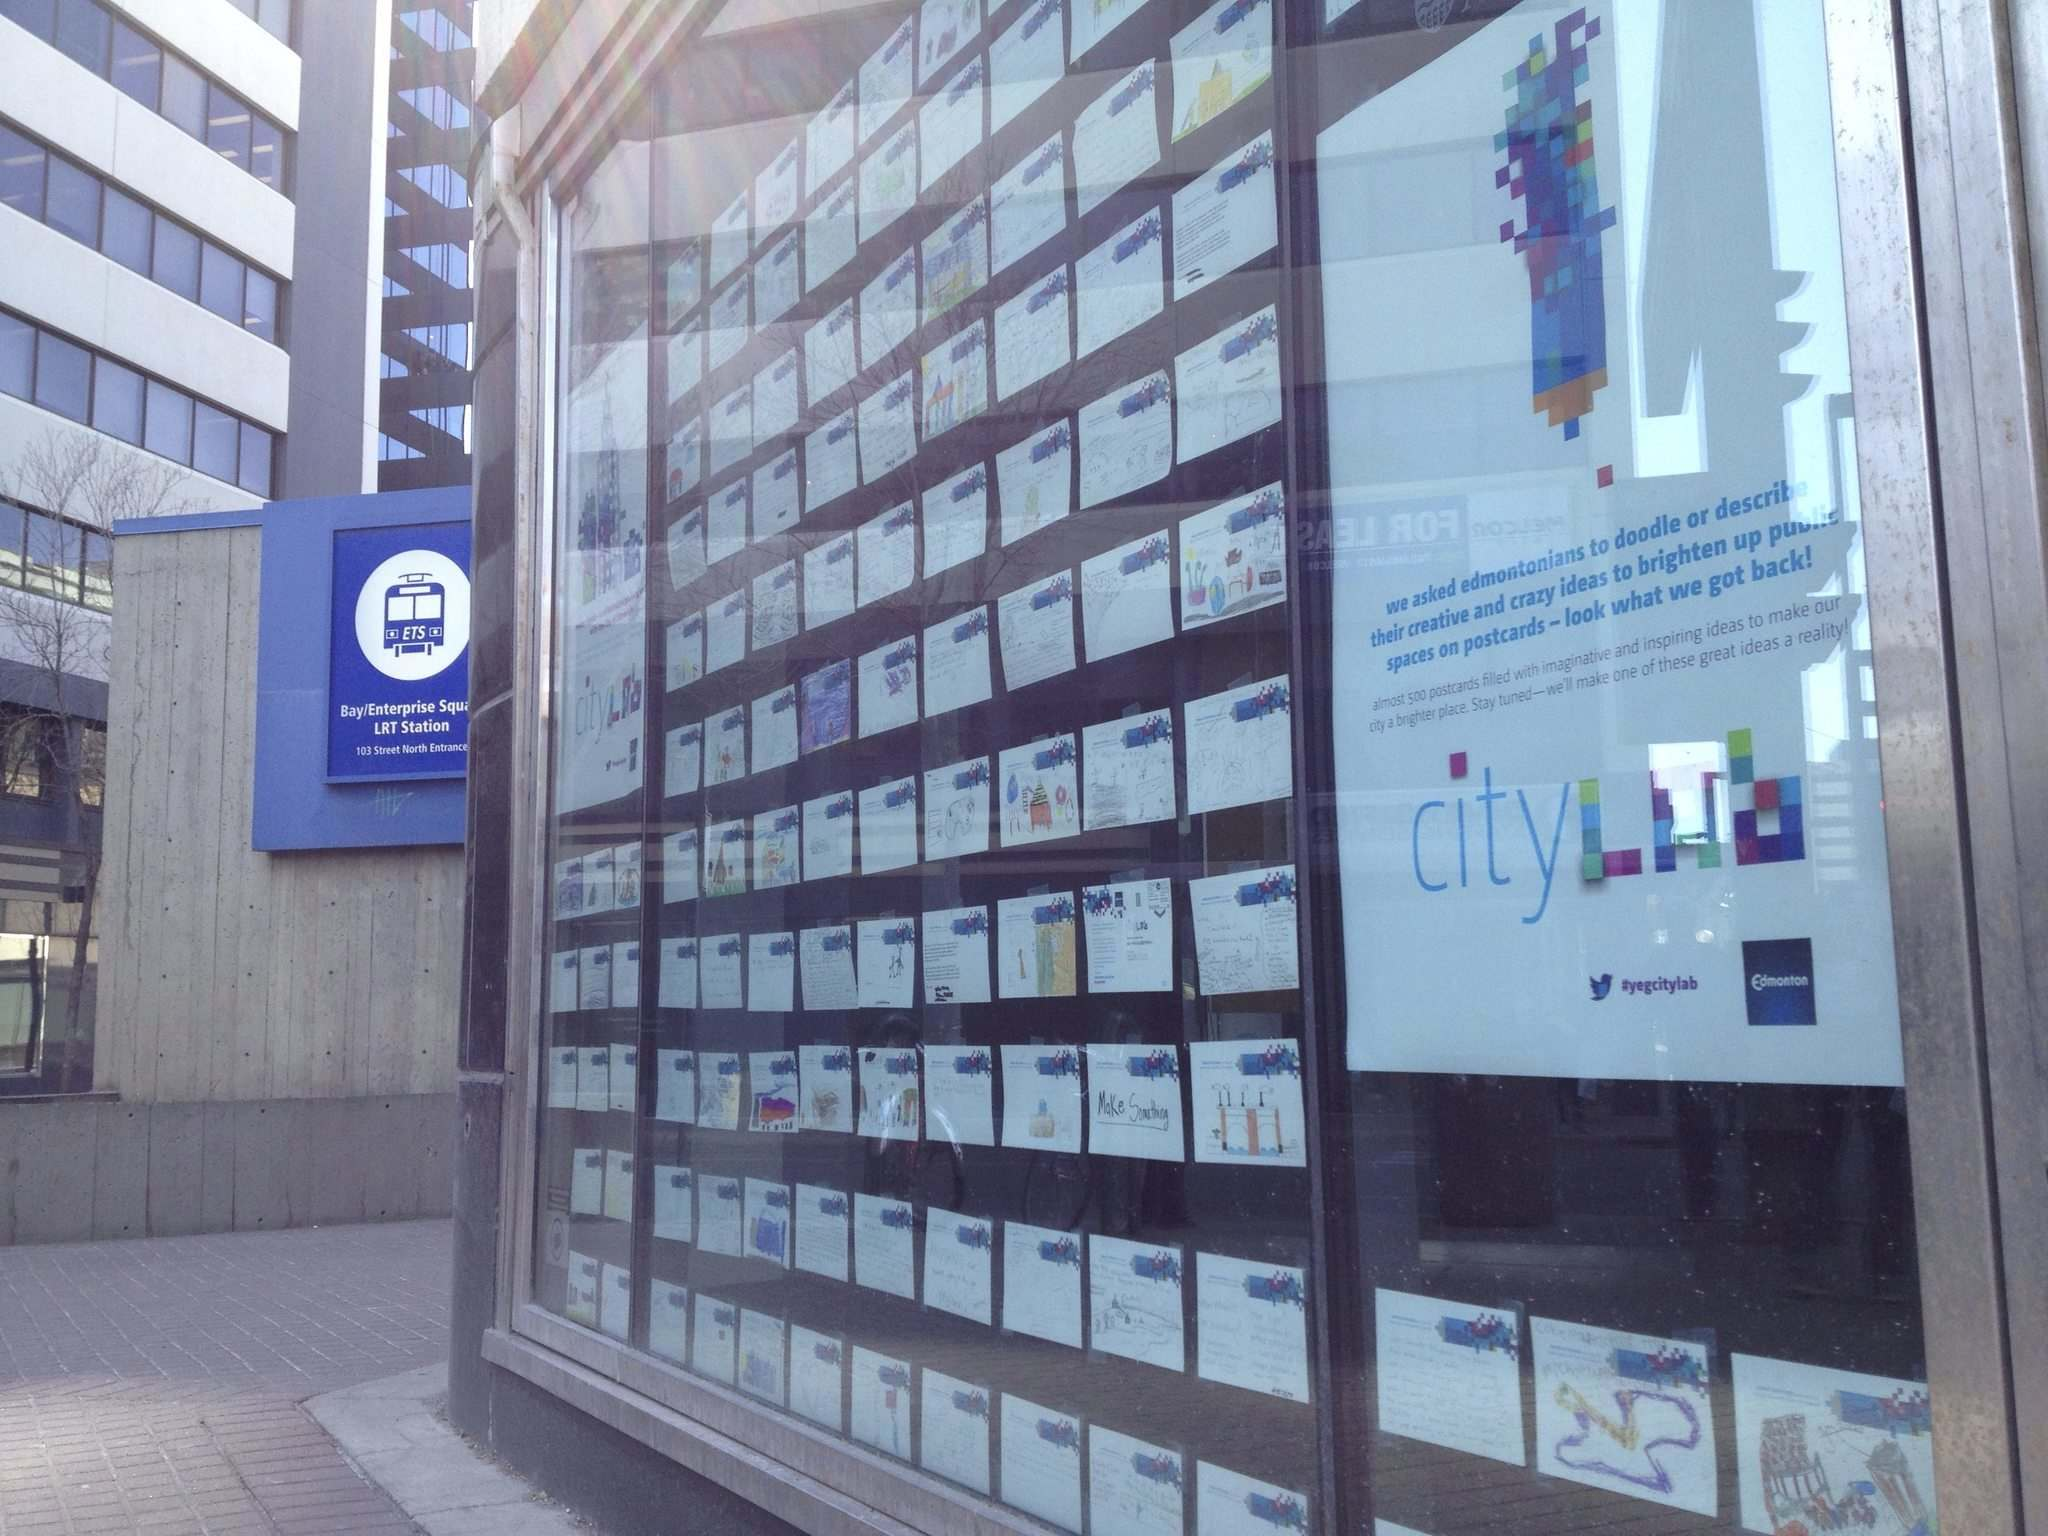 Placemaking ideas shared by Edmontonians via postcards, displayed in a vacant window downtown in 2015. (Marco Melfi)